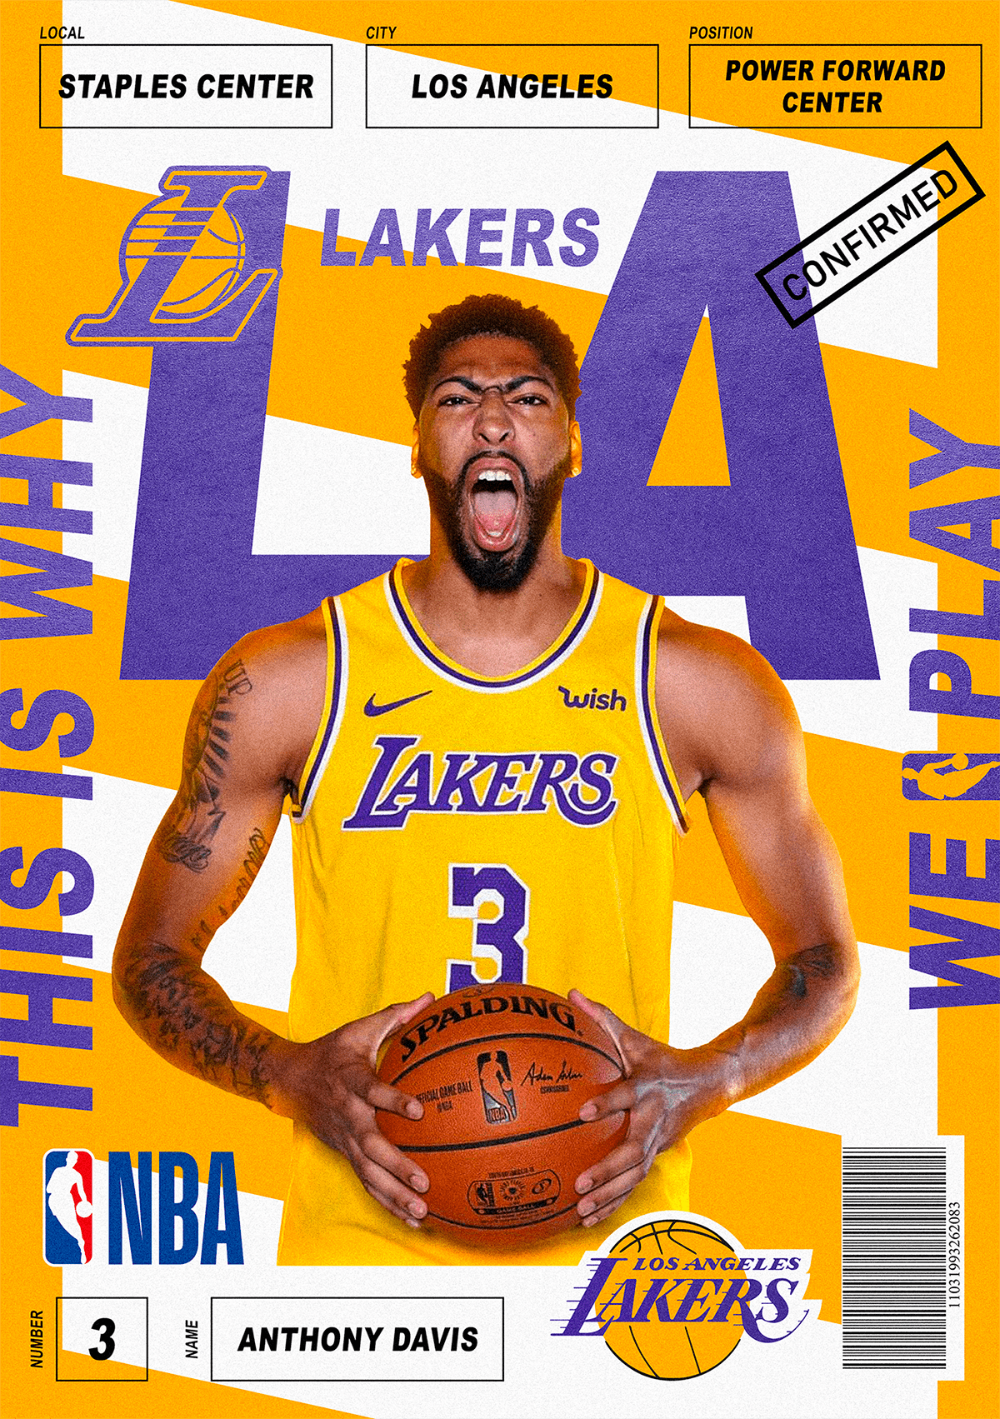 La Lakers Poster On Behance In 2020 La Lakers Poster La Lakers Lakers